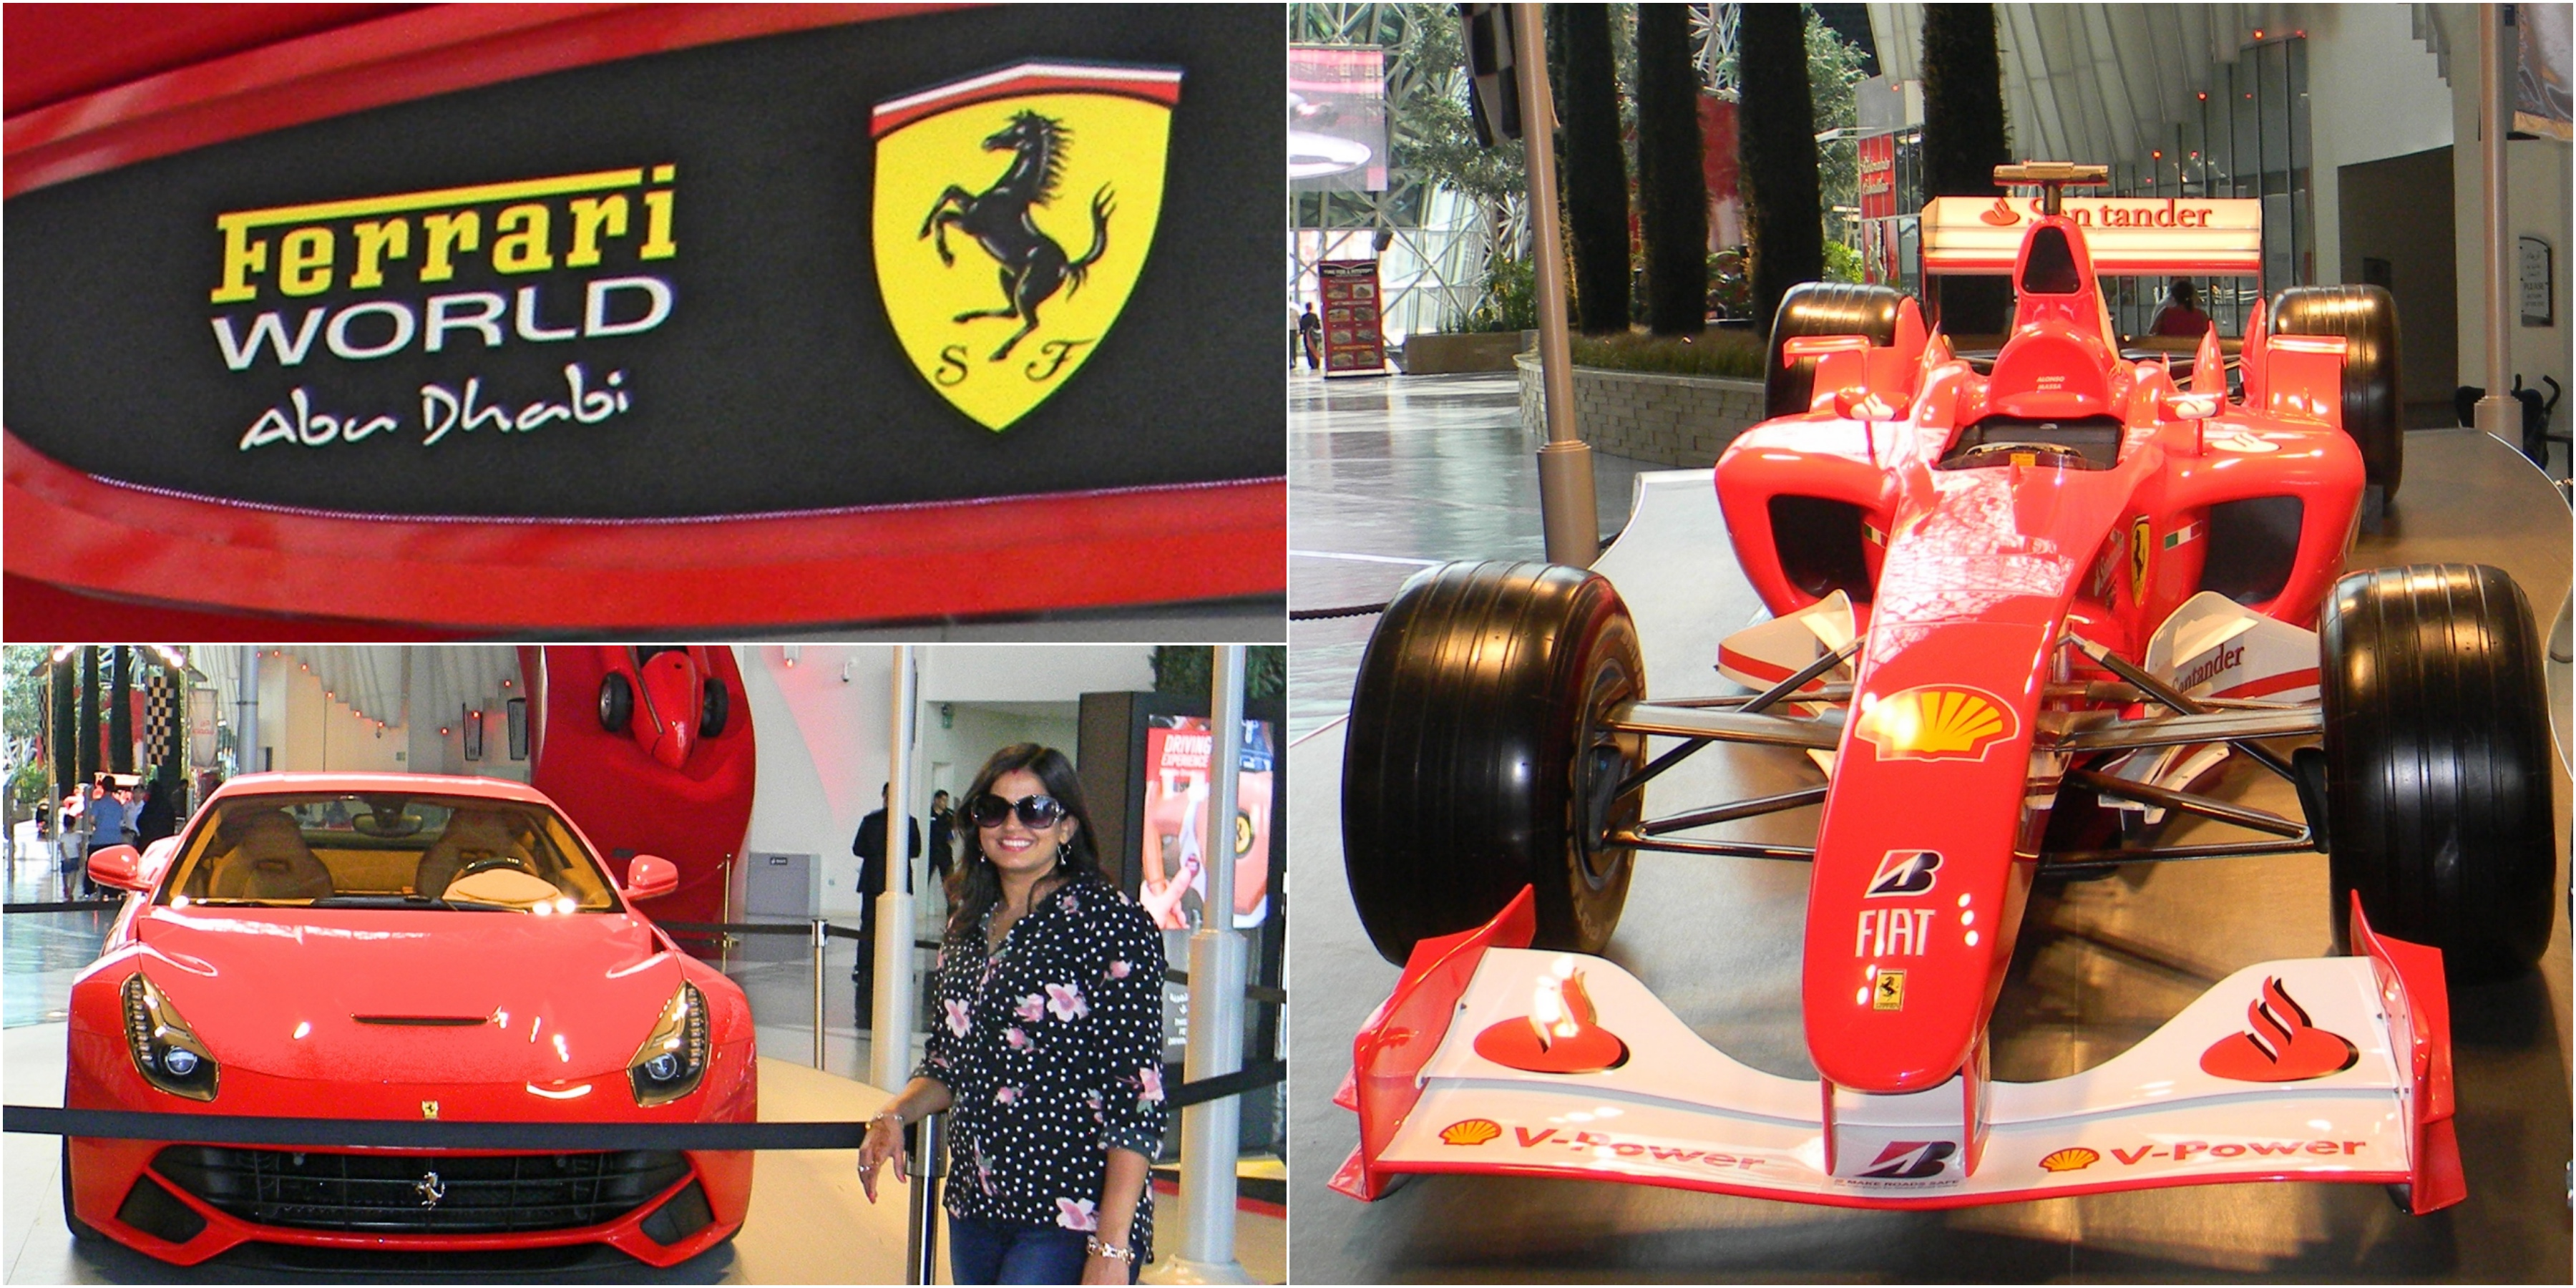 Ferrari World, Abu Dhabi, UAE